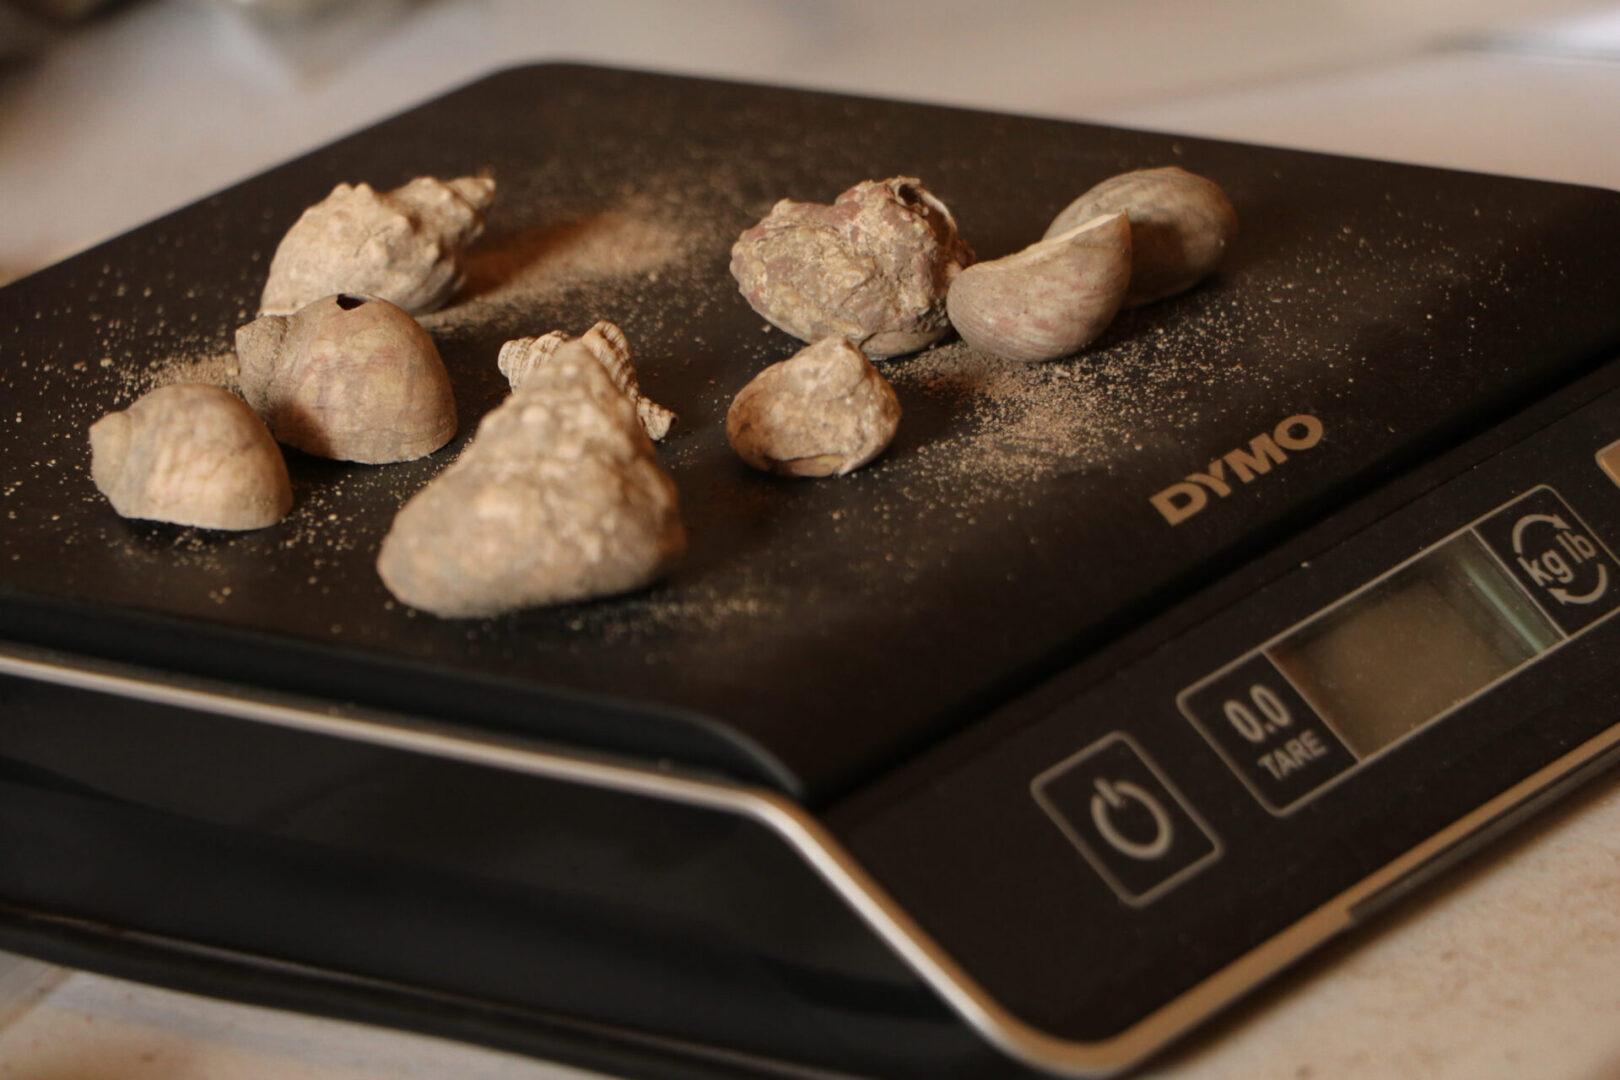 Shells on a weighing scale